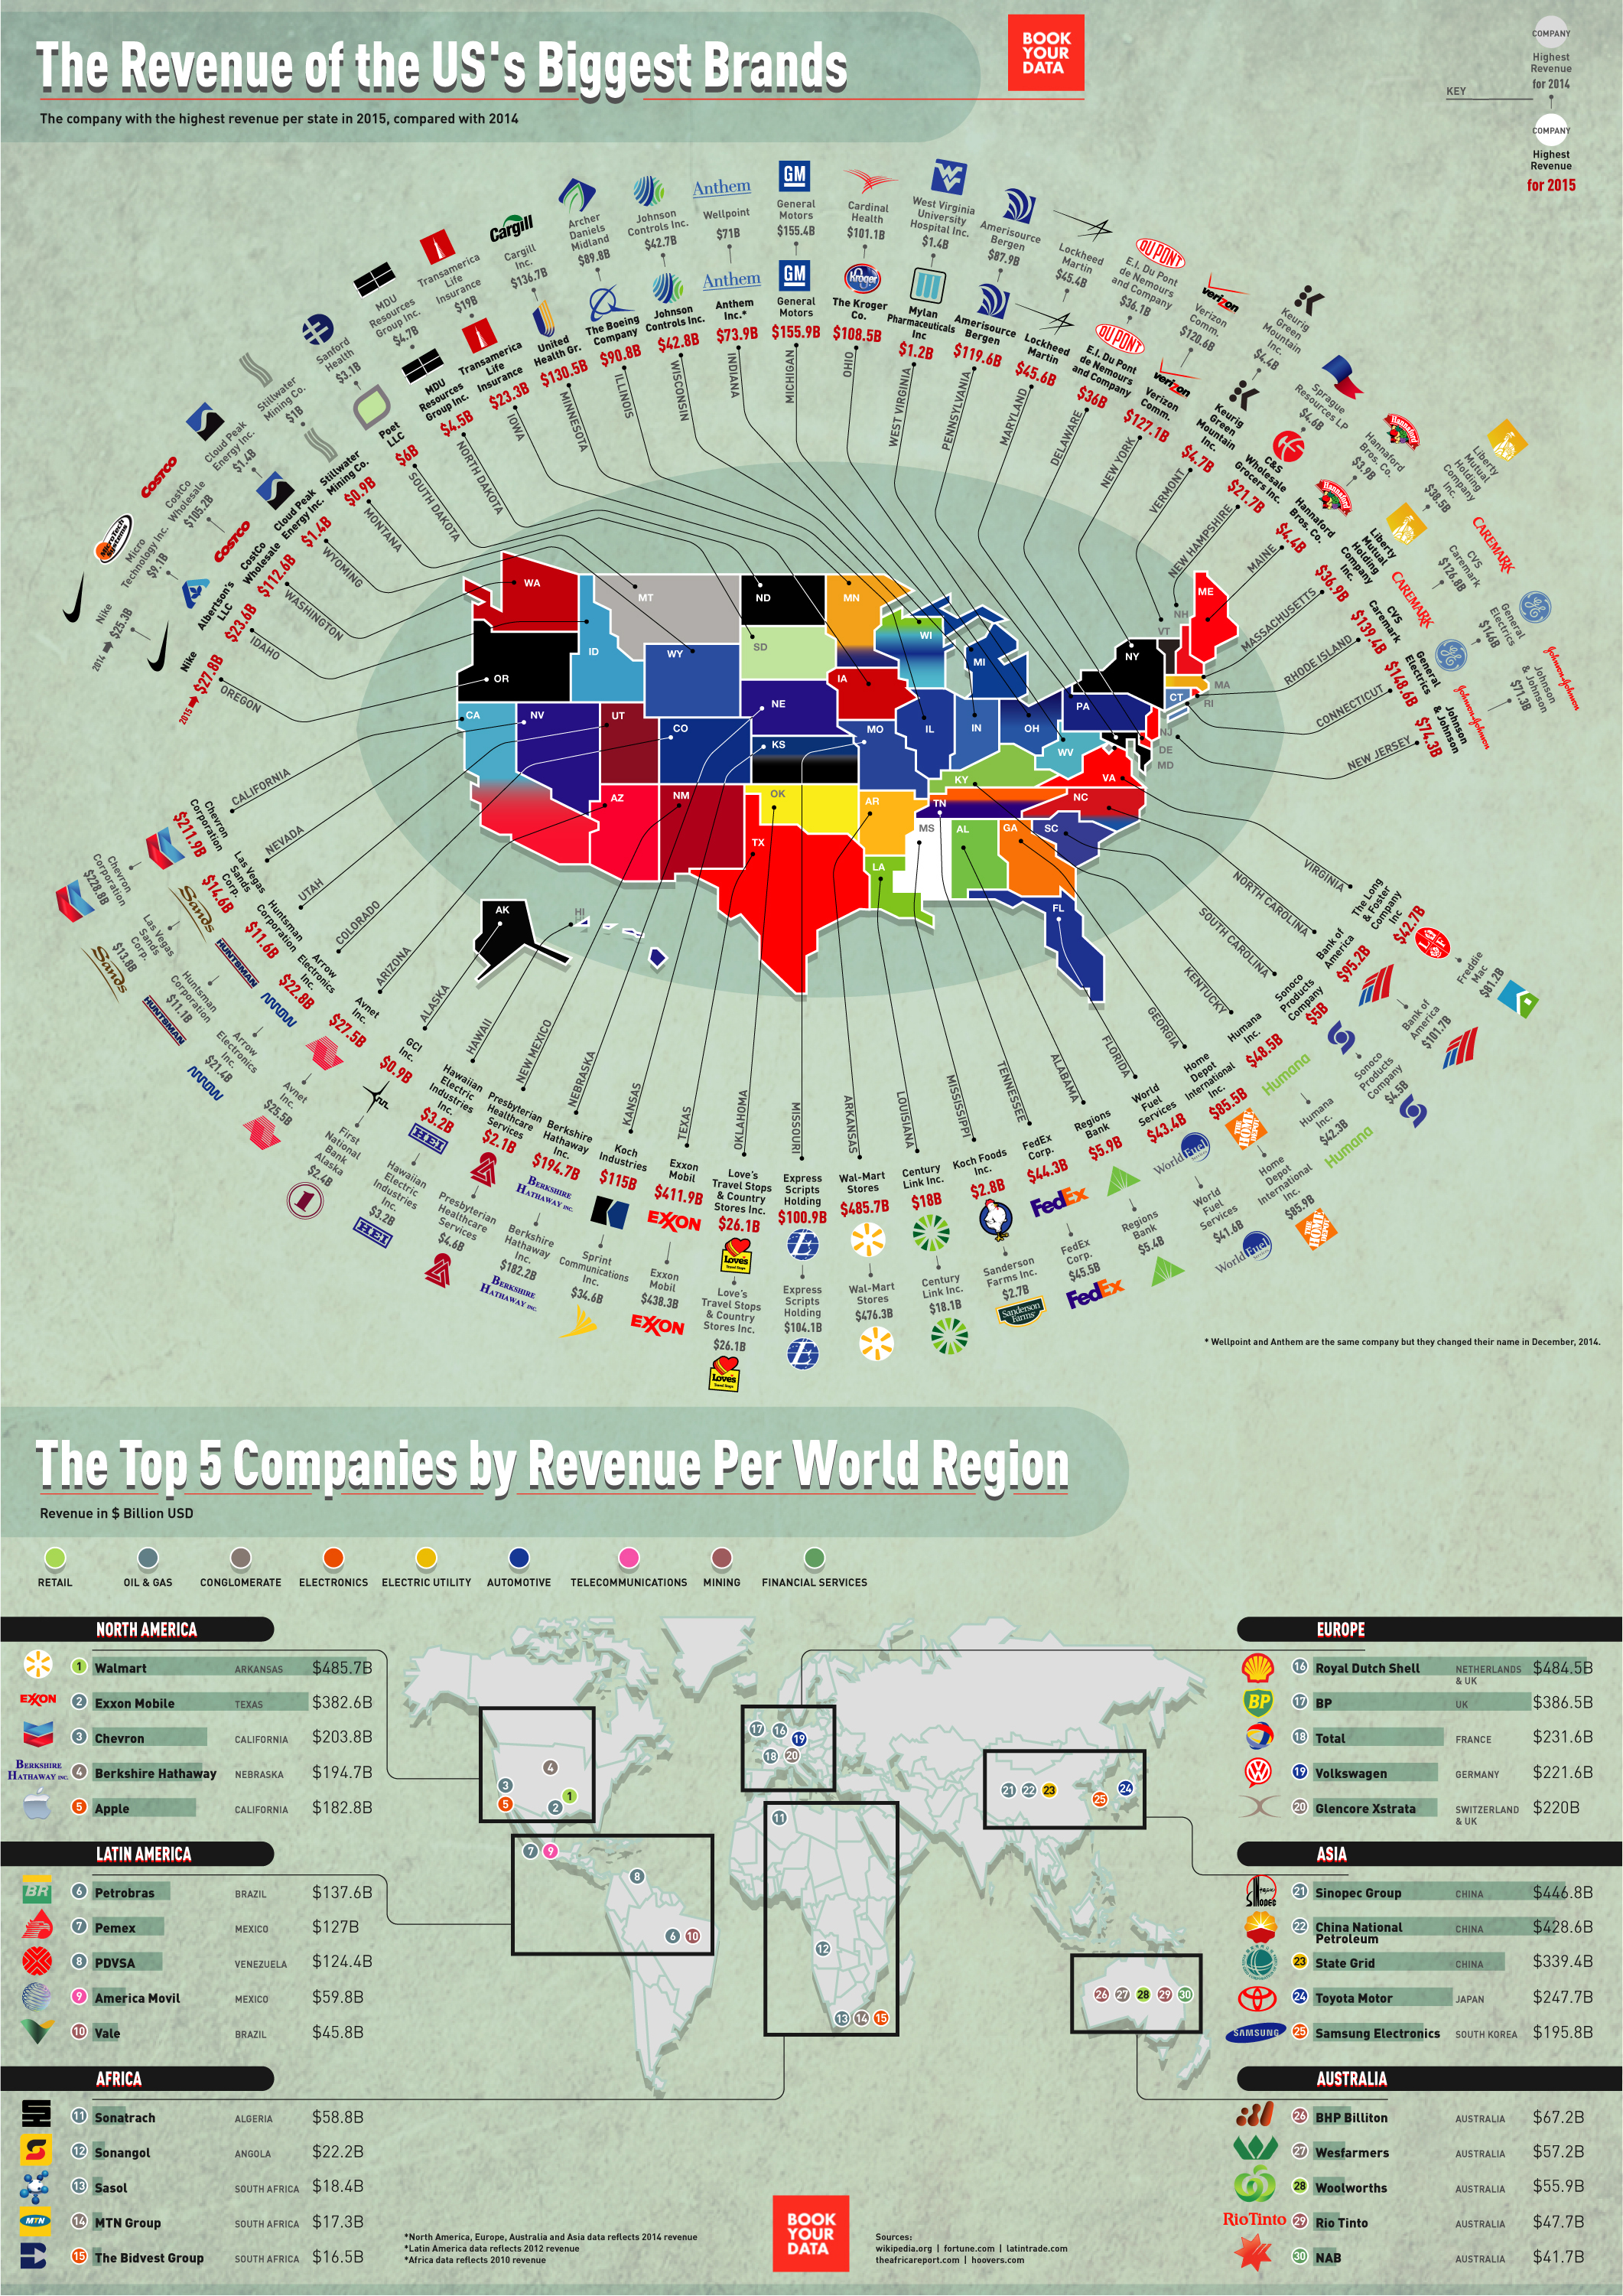 The Revenue of the US's Biggest Brands - BookYourData.com - Infographic